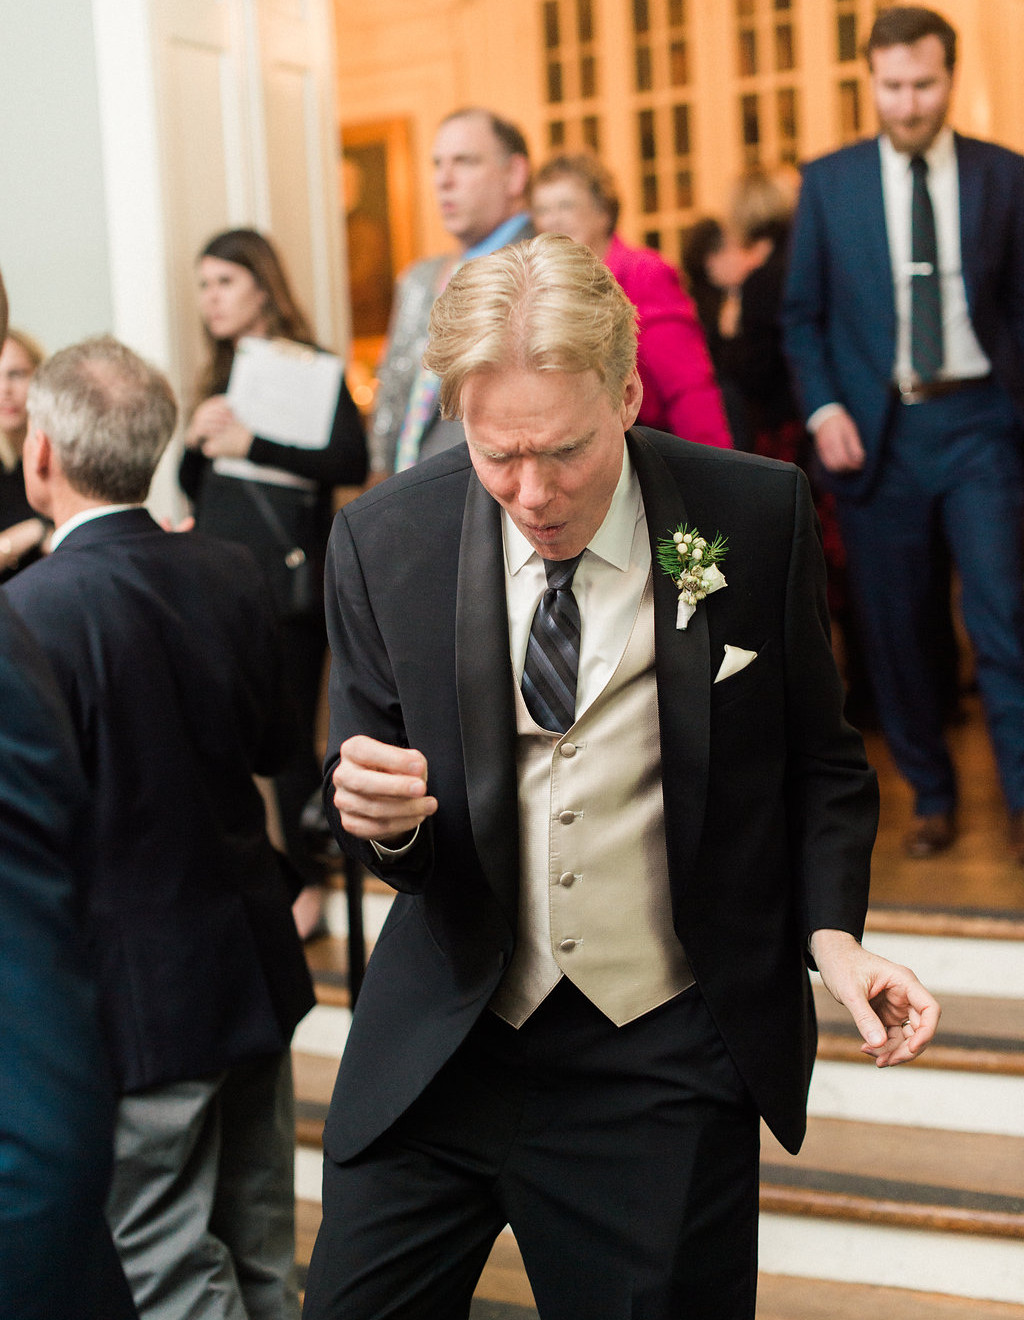 father of bride dancing at wedding